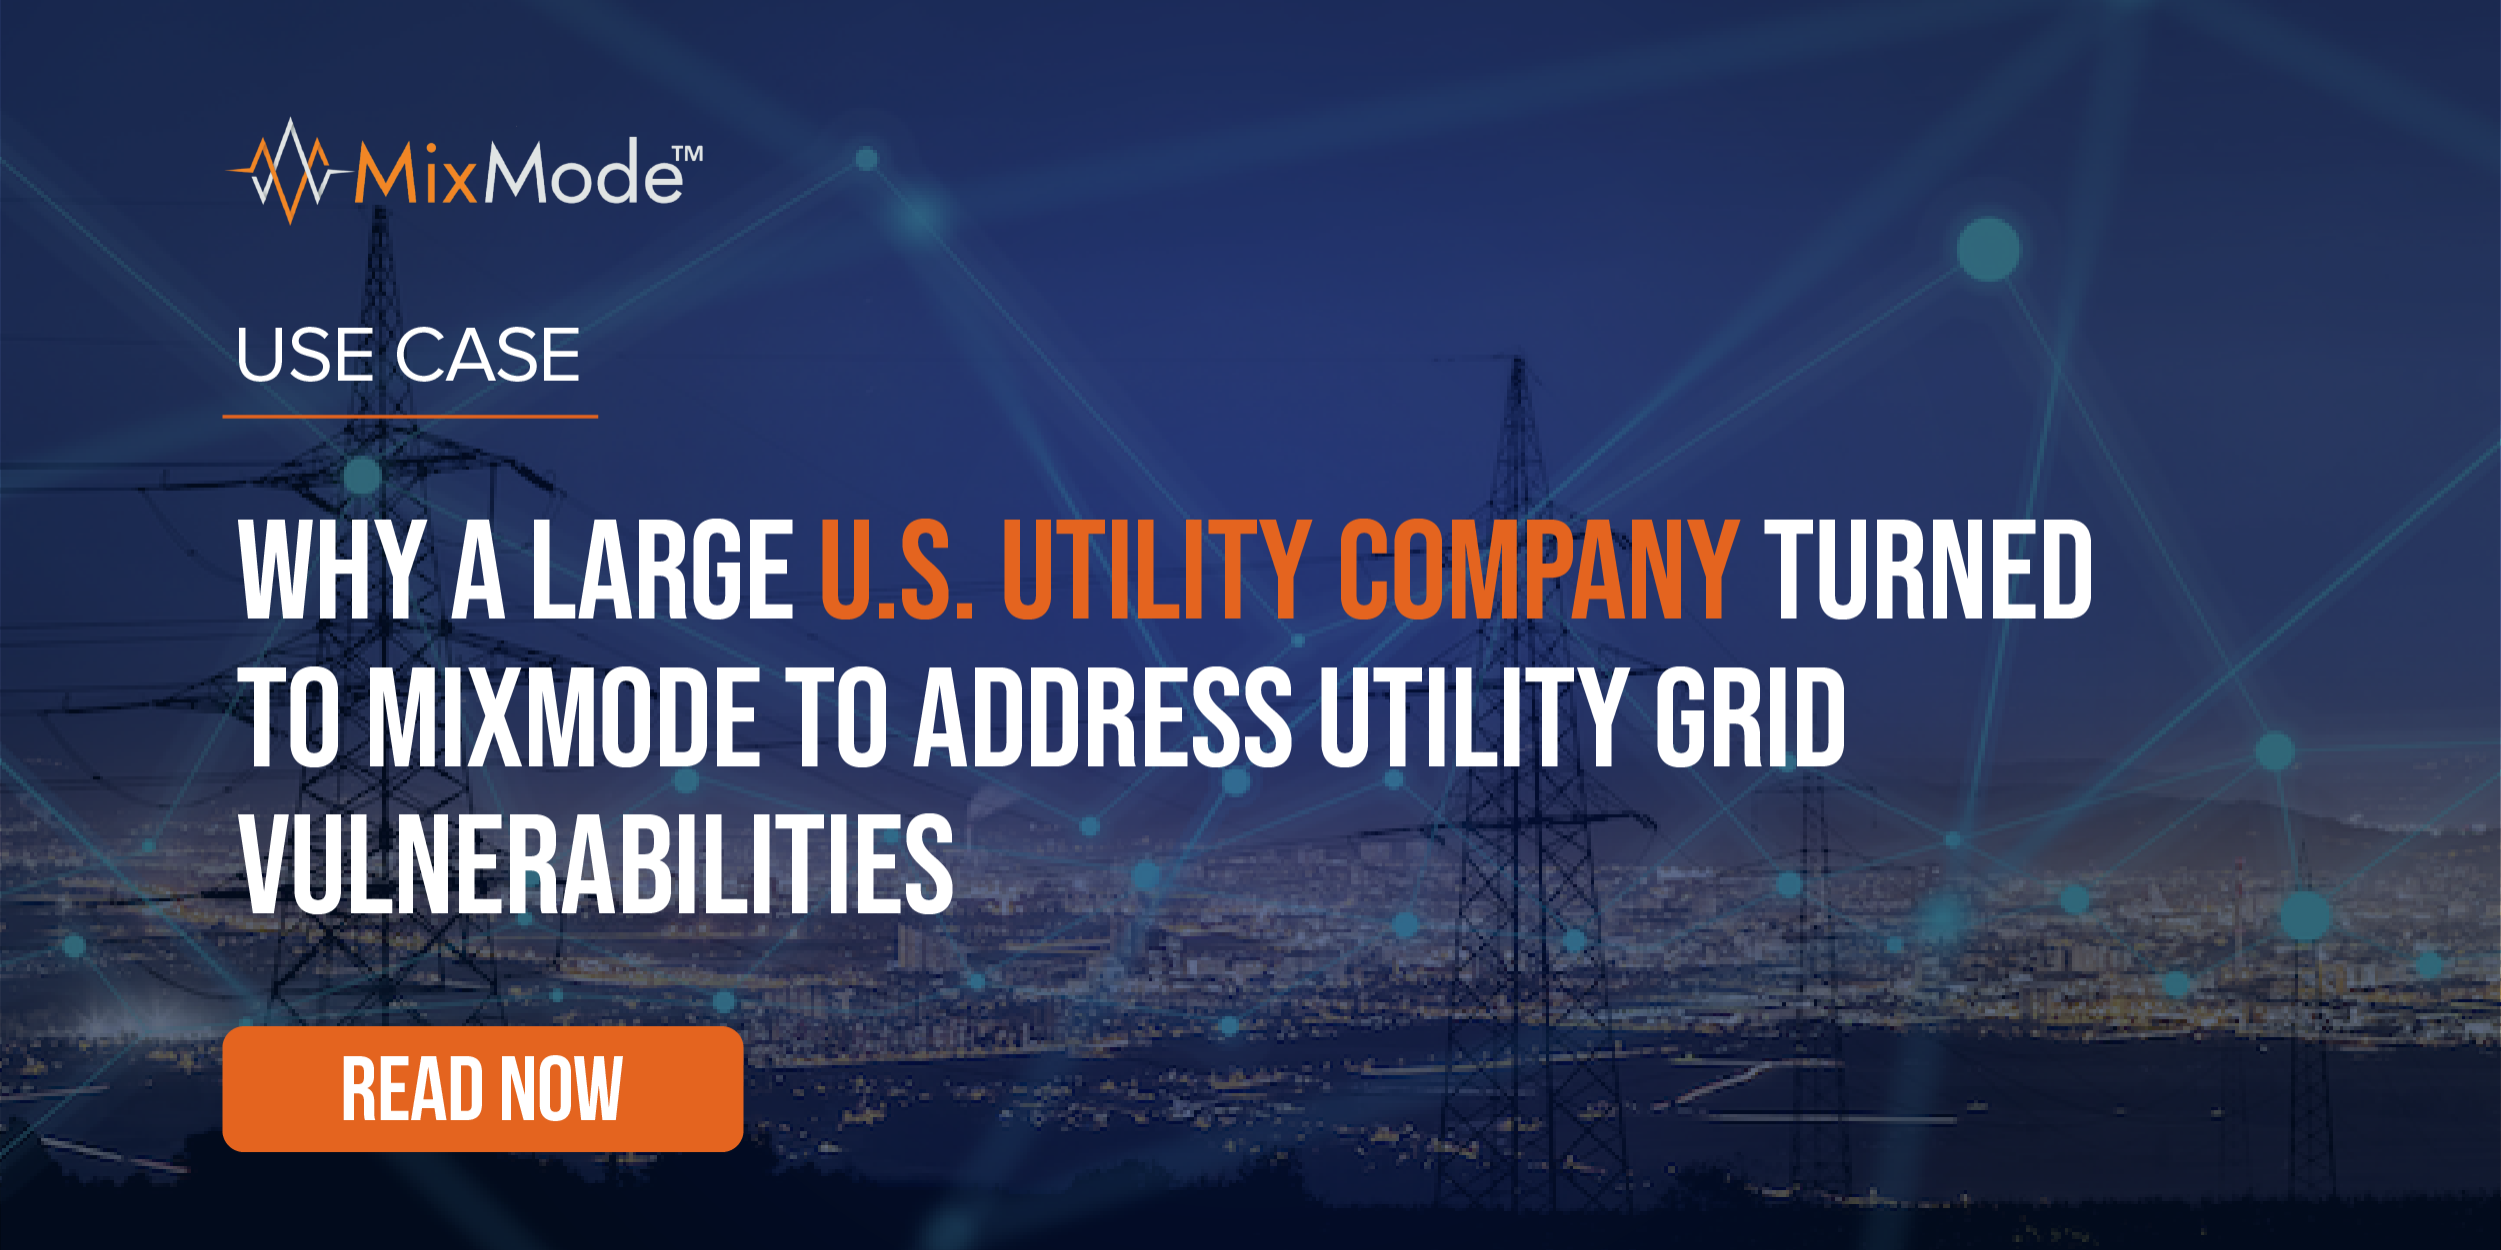 MixMode - Why A Large U.S. Utilility Company Turned to MixMode to Address Utility Grid Vulnerabilities-19